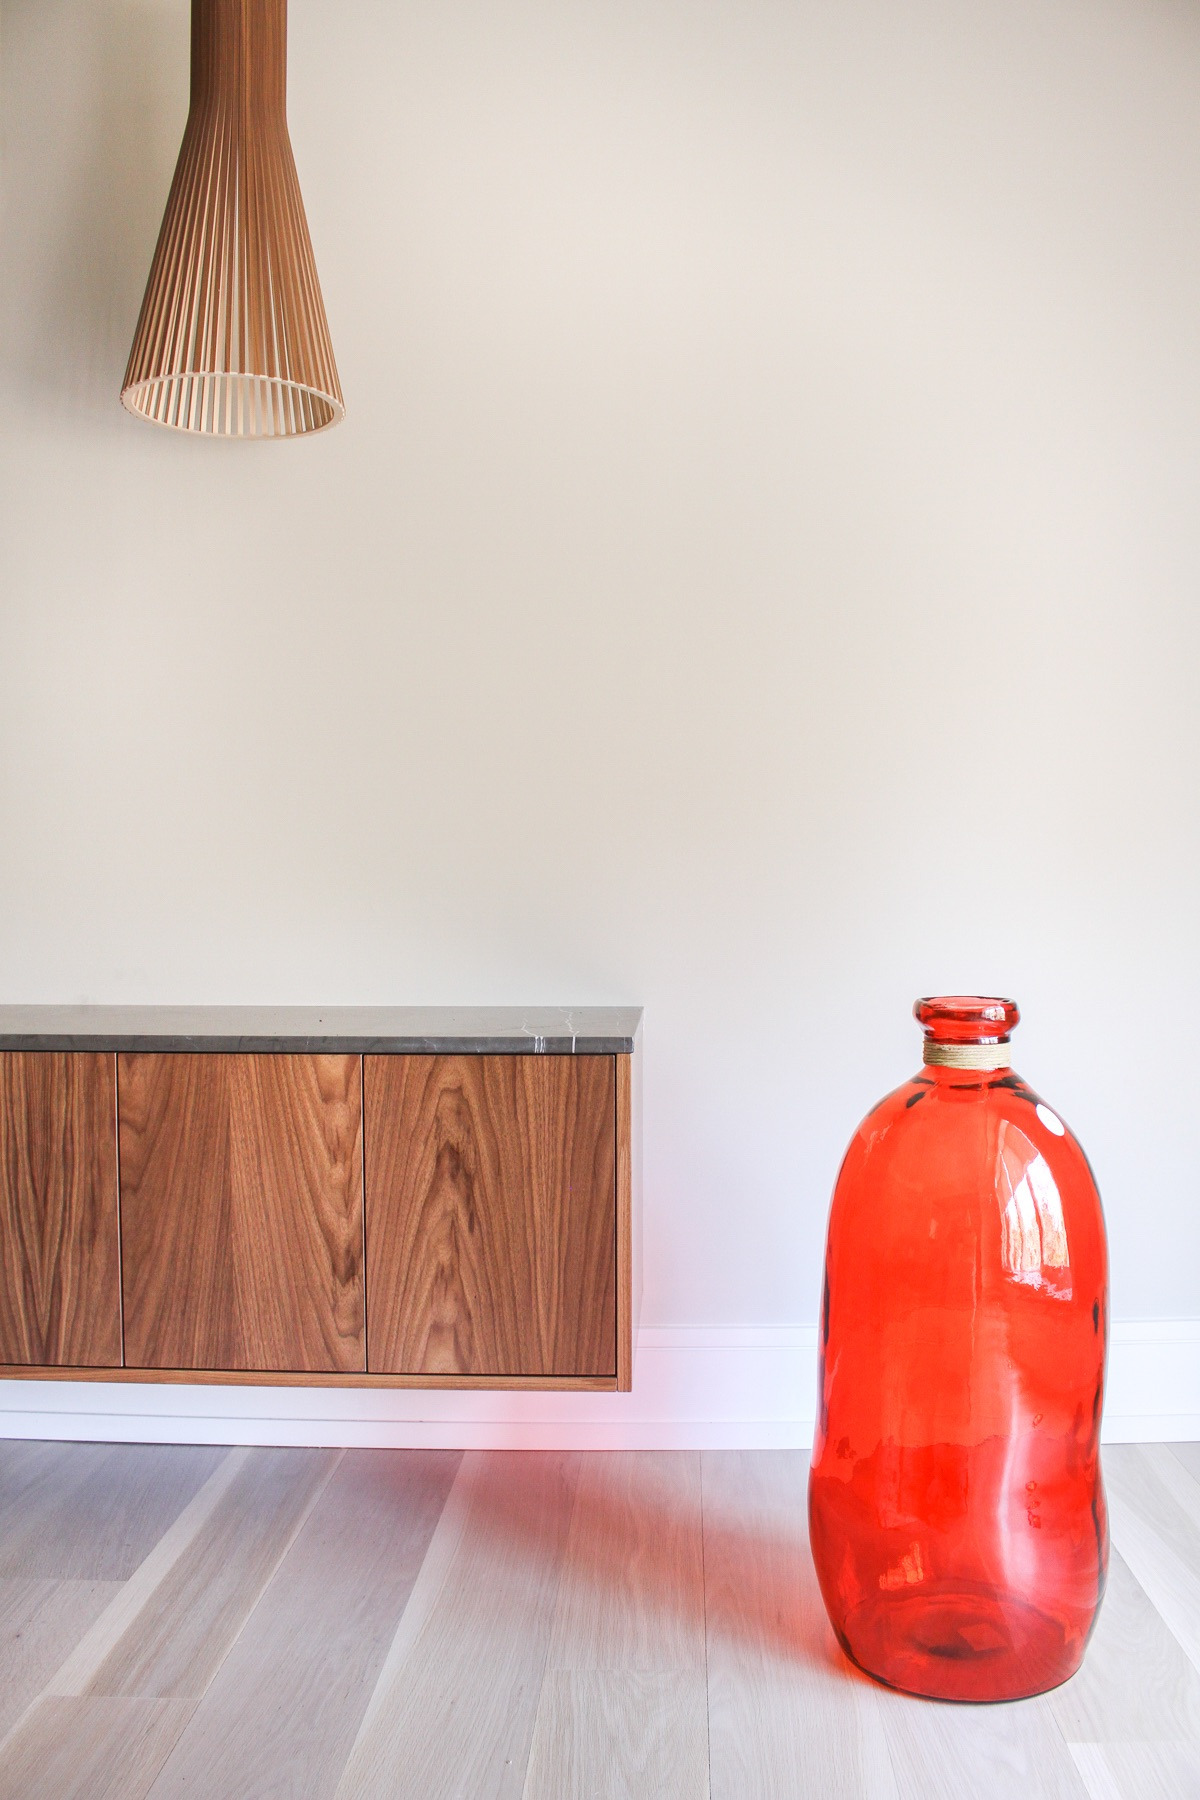 wood cabinet with wood light and red vase